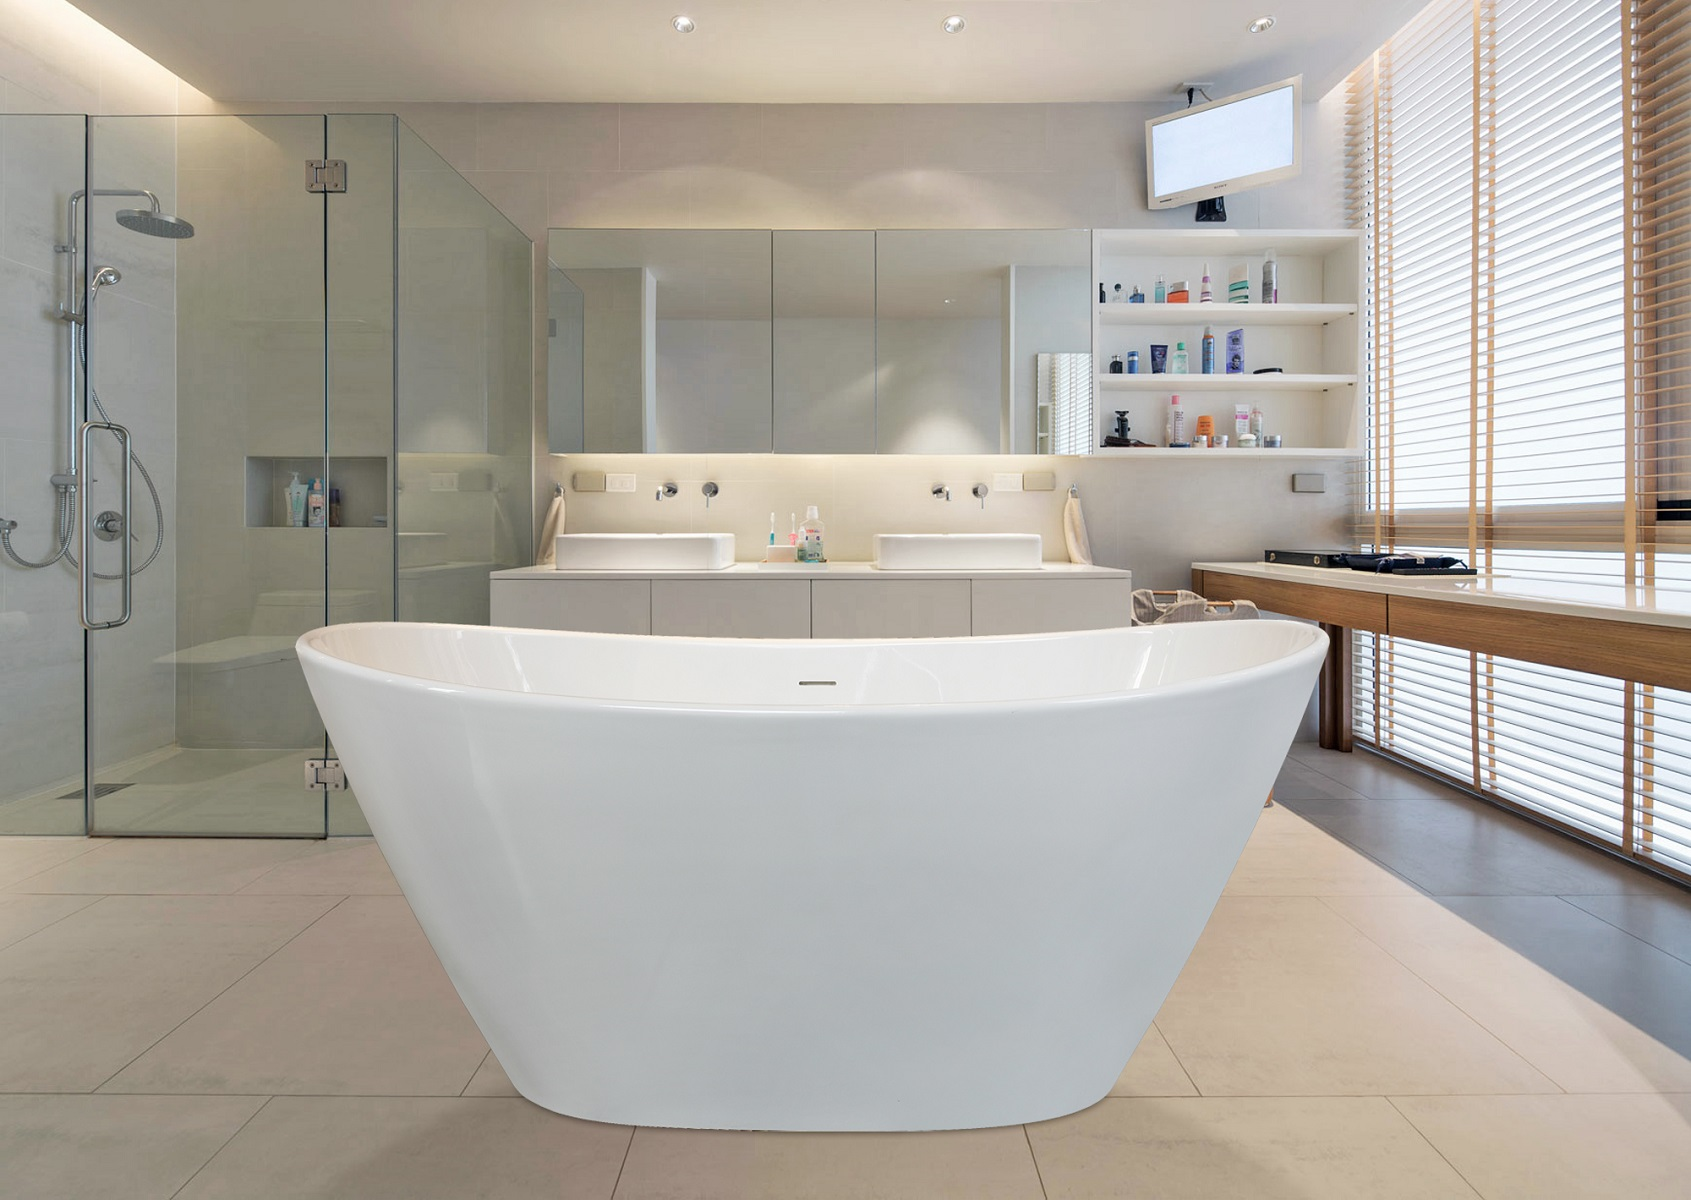 centered bathtub